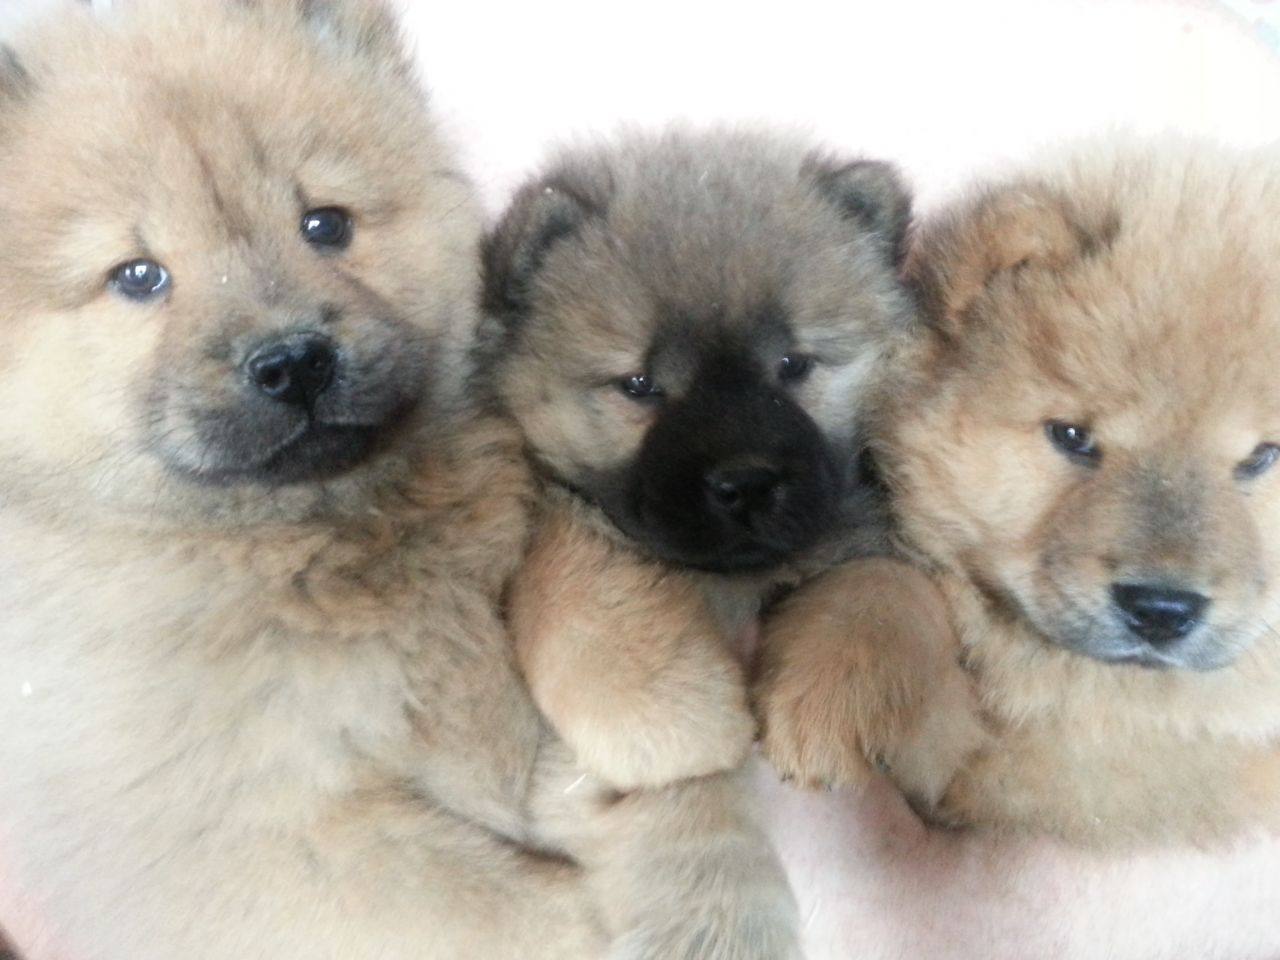 Panda Chow Chow Puppies For Sale Chow Puppies For Sale Chow